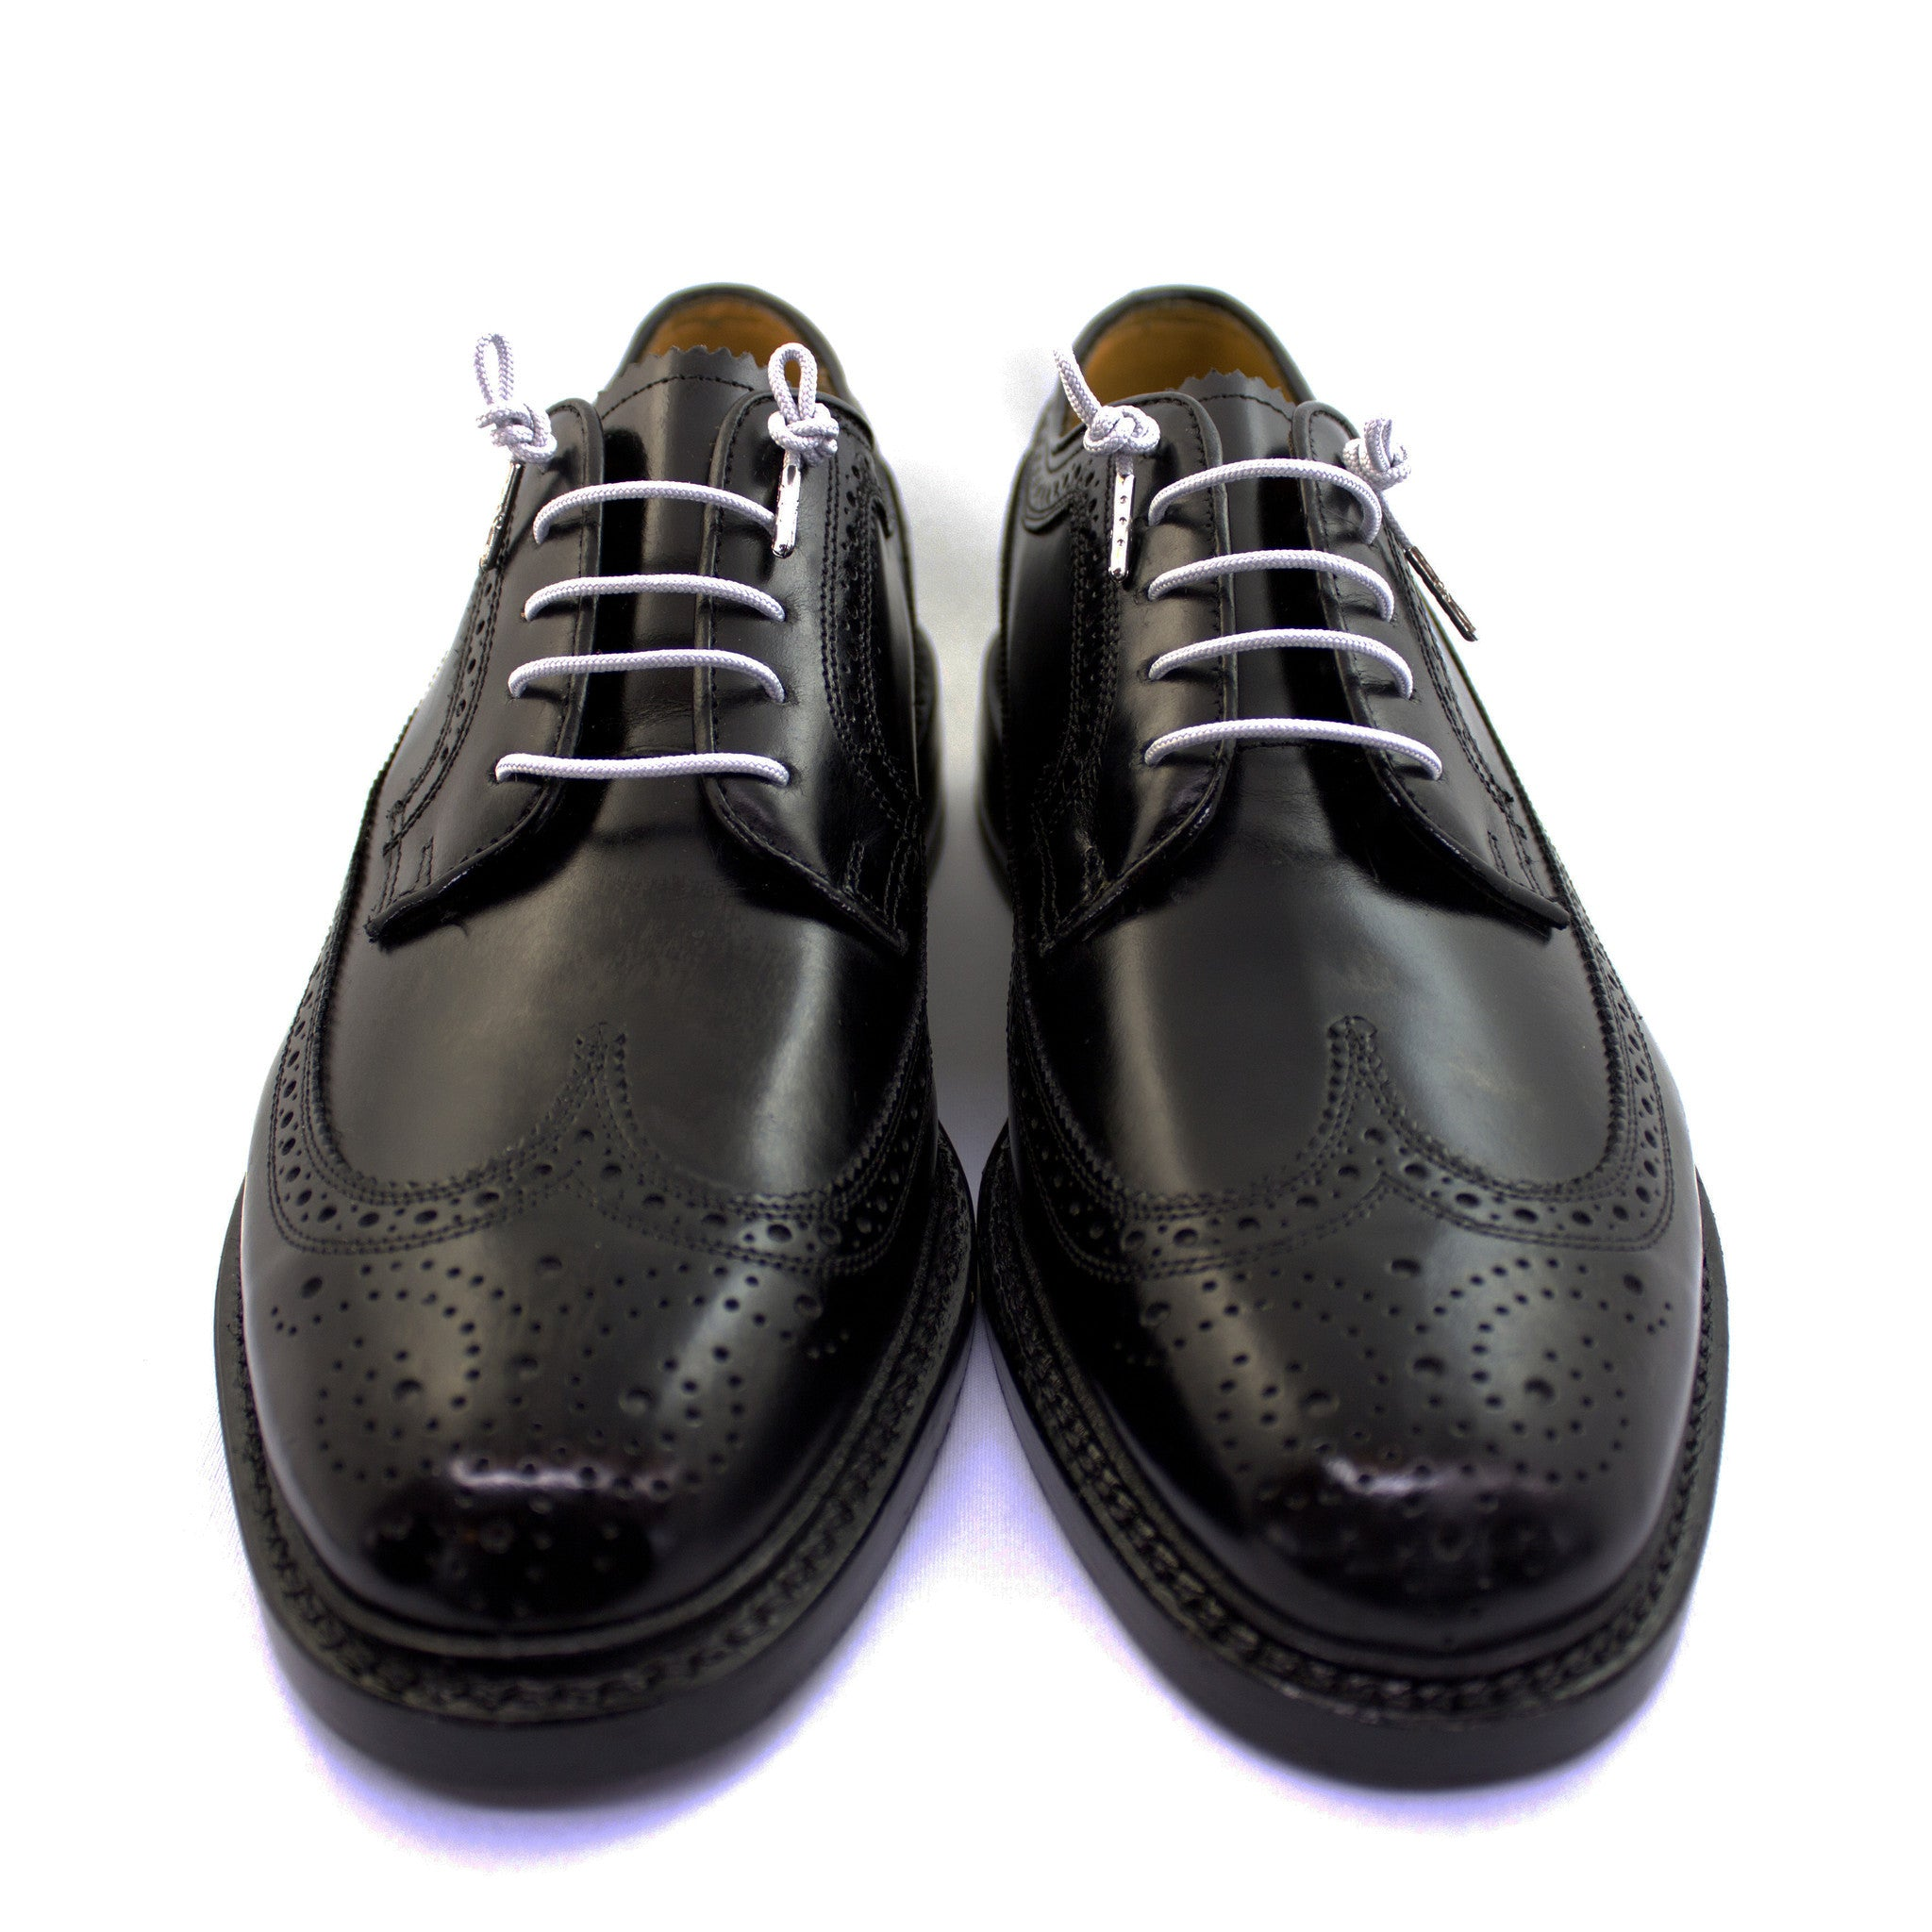 Mens Dress Shoes With Metal Tips